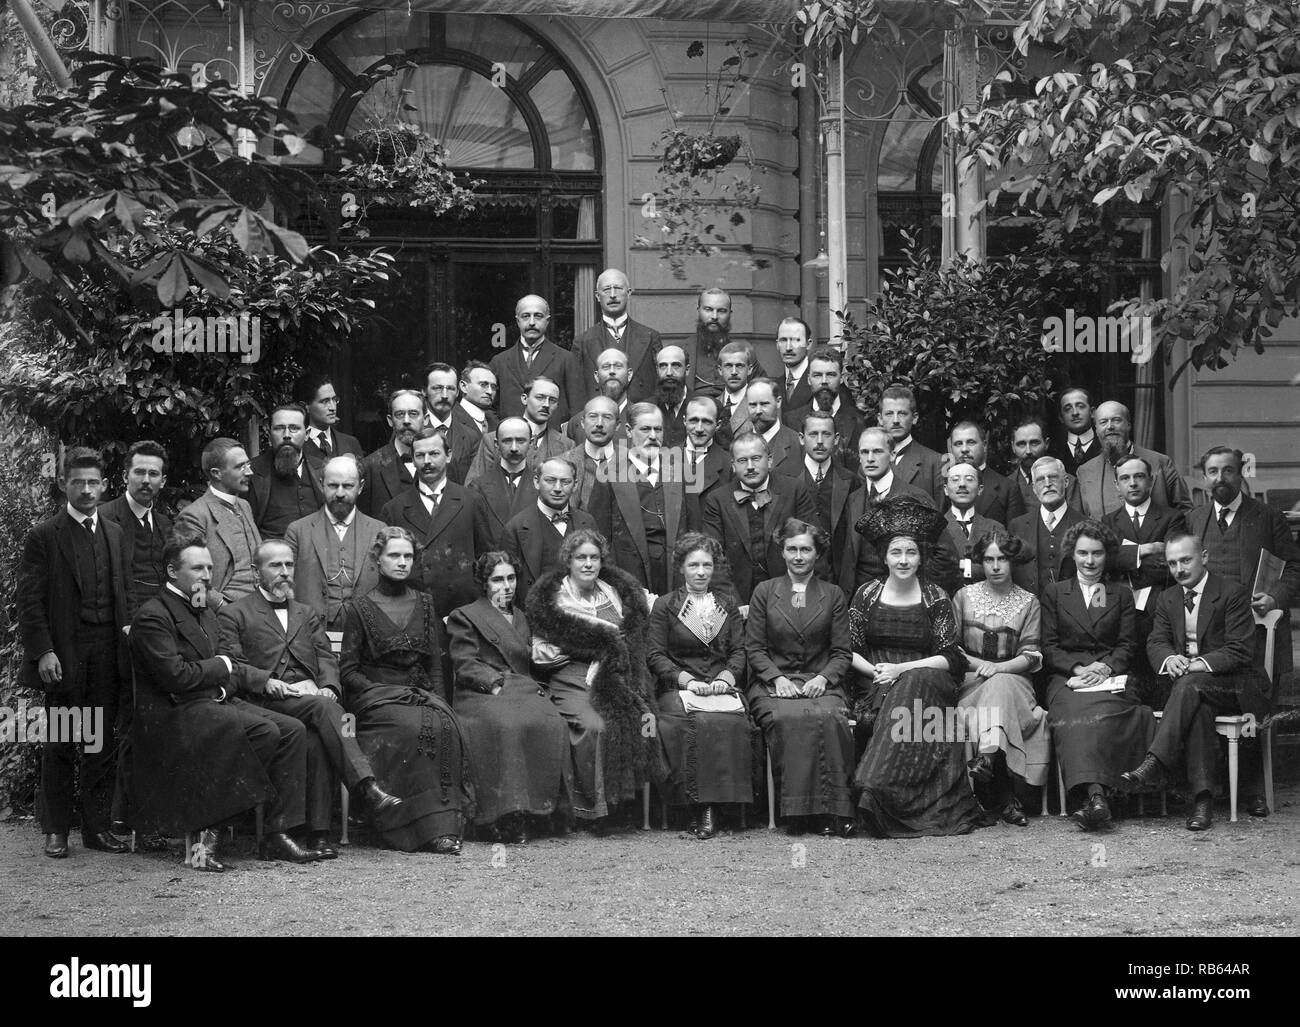 International Psychoanalytic Congress. 1911. Sigmund Freud and Carl Jung seen at the centre of the group - Stock Image